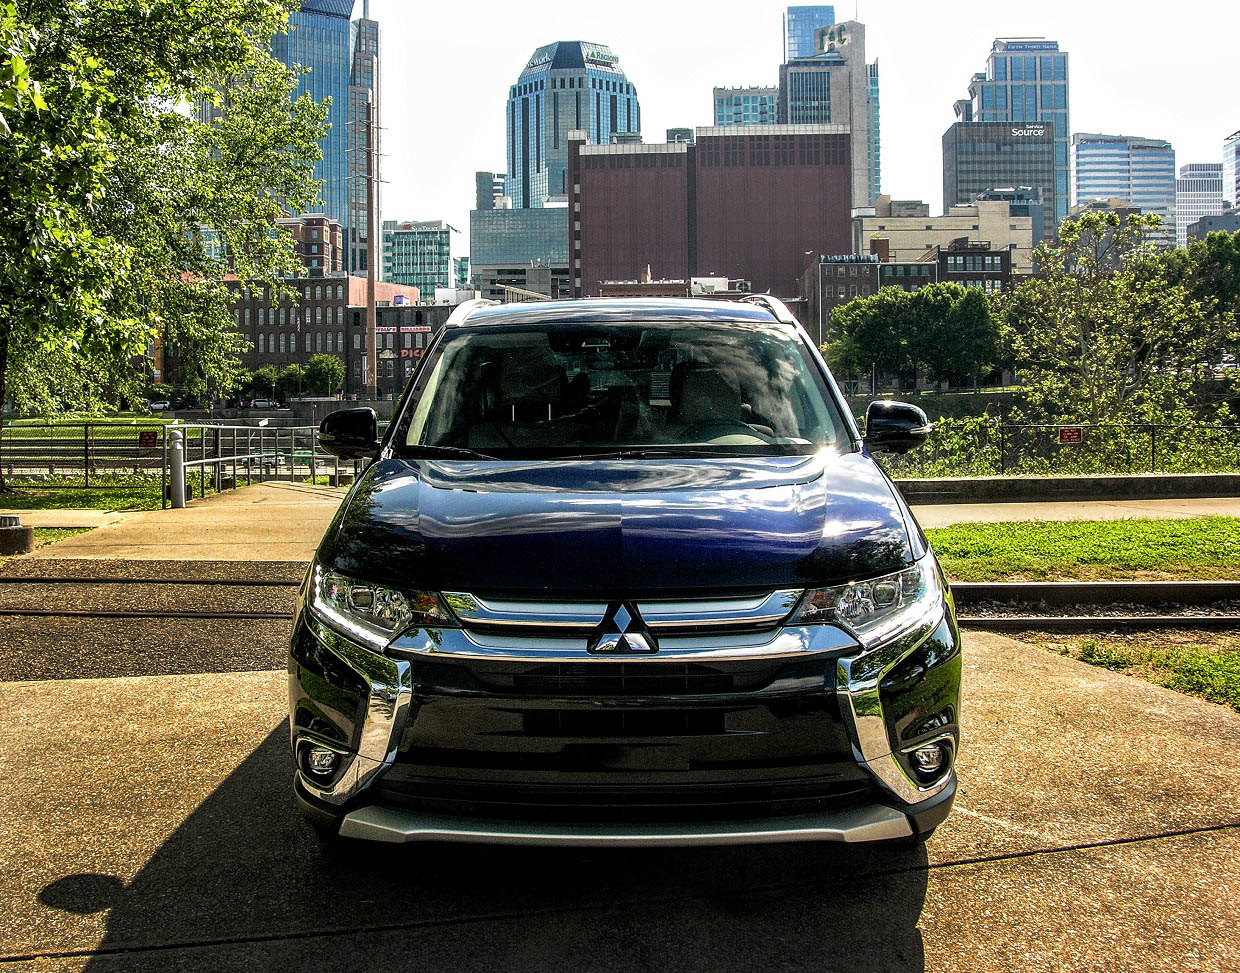 2018 Mitsubishi Outlander 3 0 GT Review: The Road Well Traveled